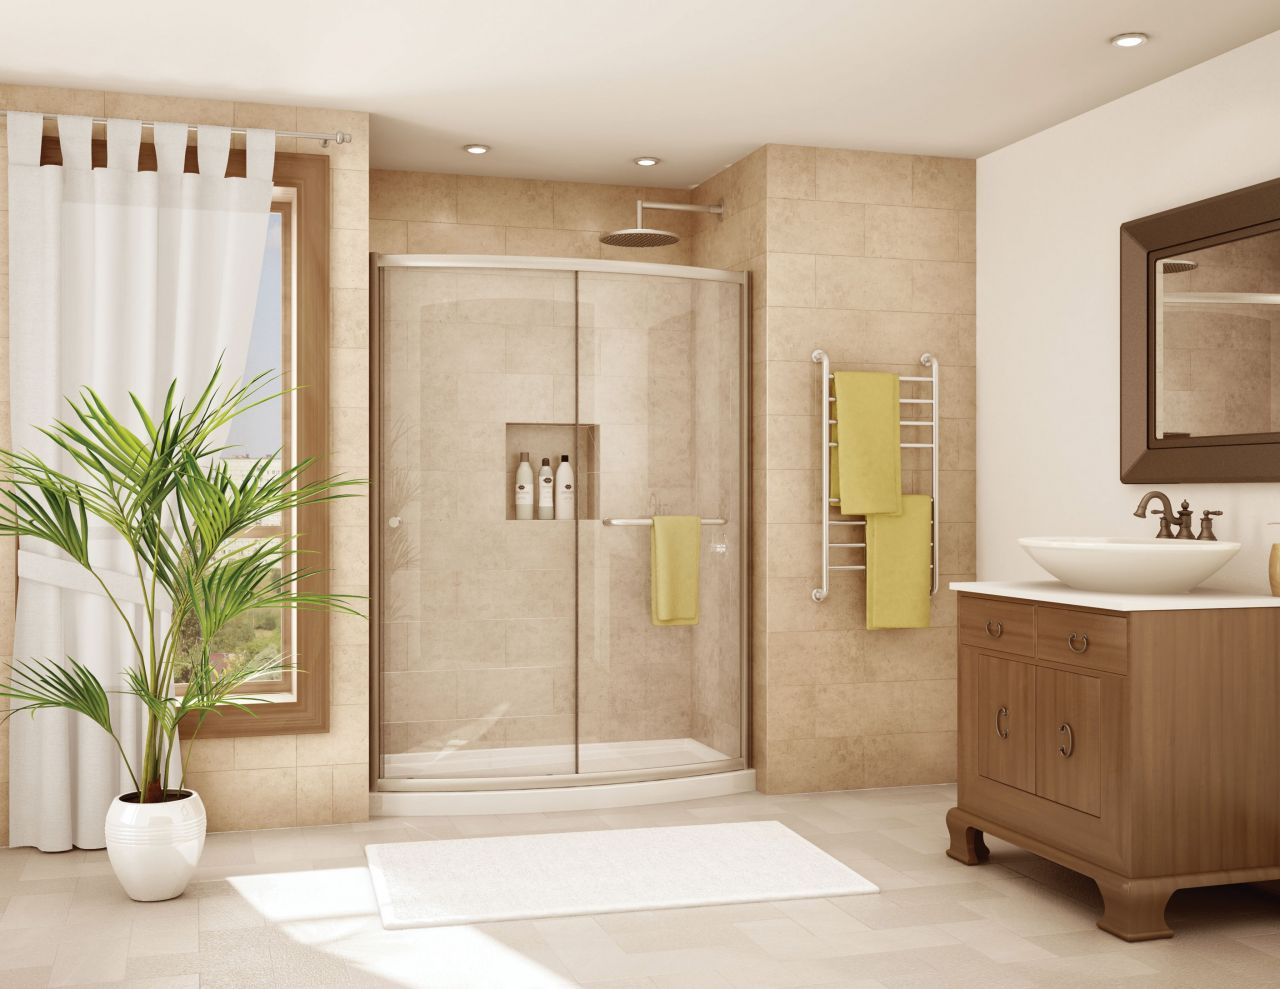 7 reasons to choose a shower door over a shower curtain bowed curved glass wall enclosure keeps water in and makes the space bigger